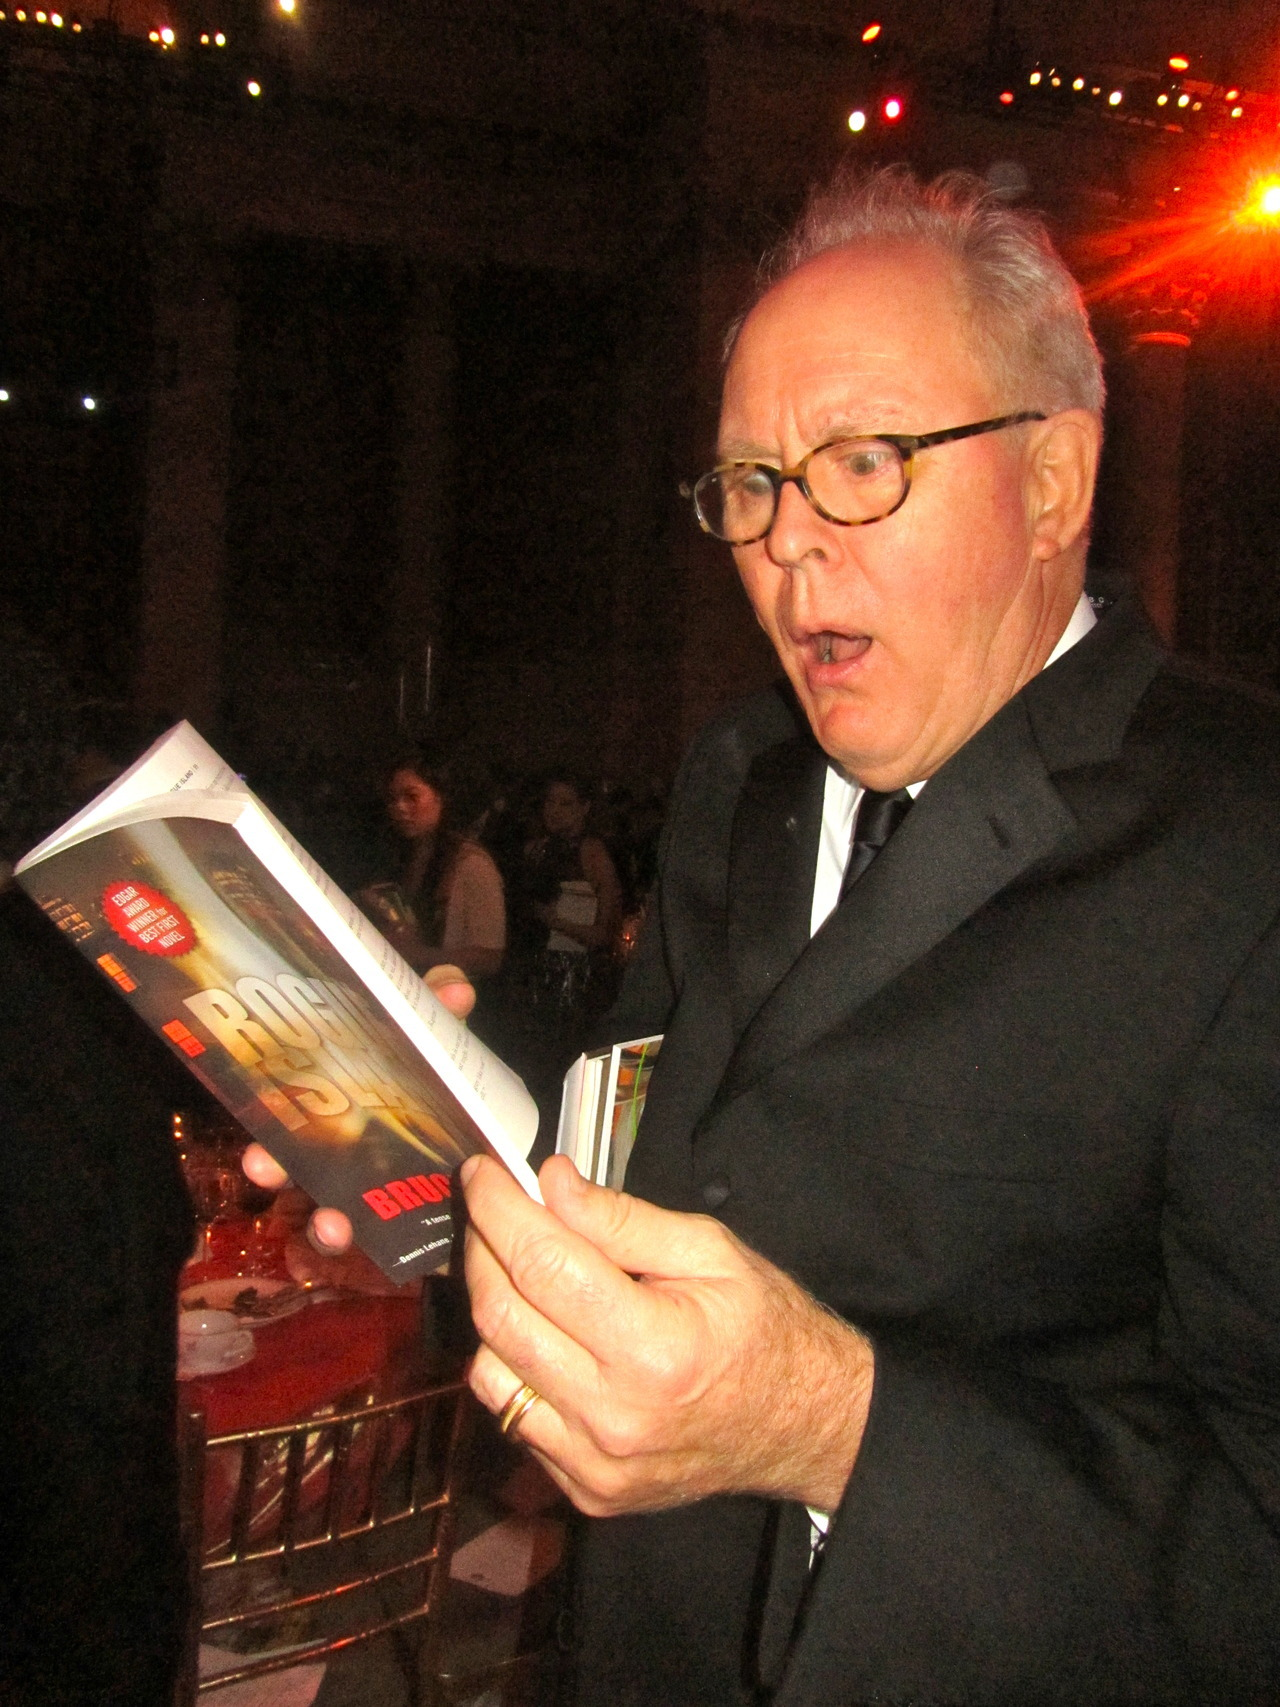 John Lithgow reads.